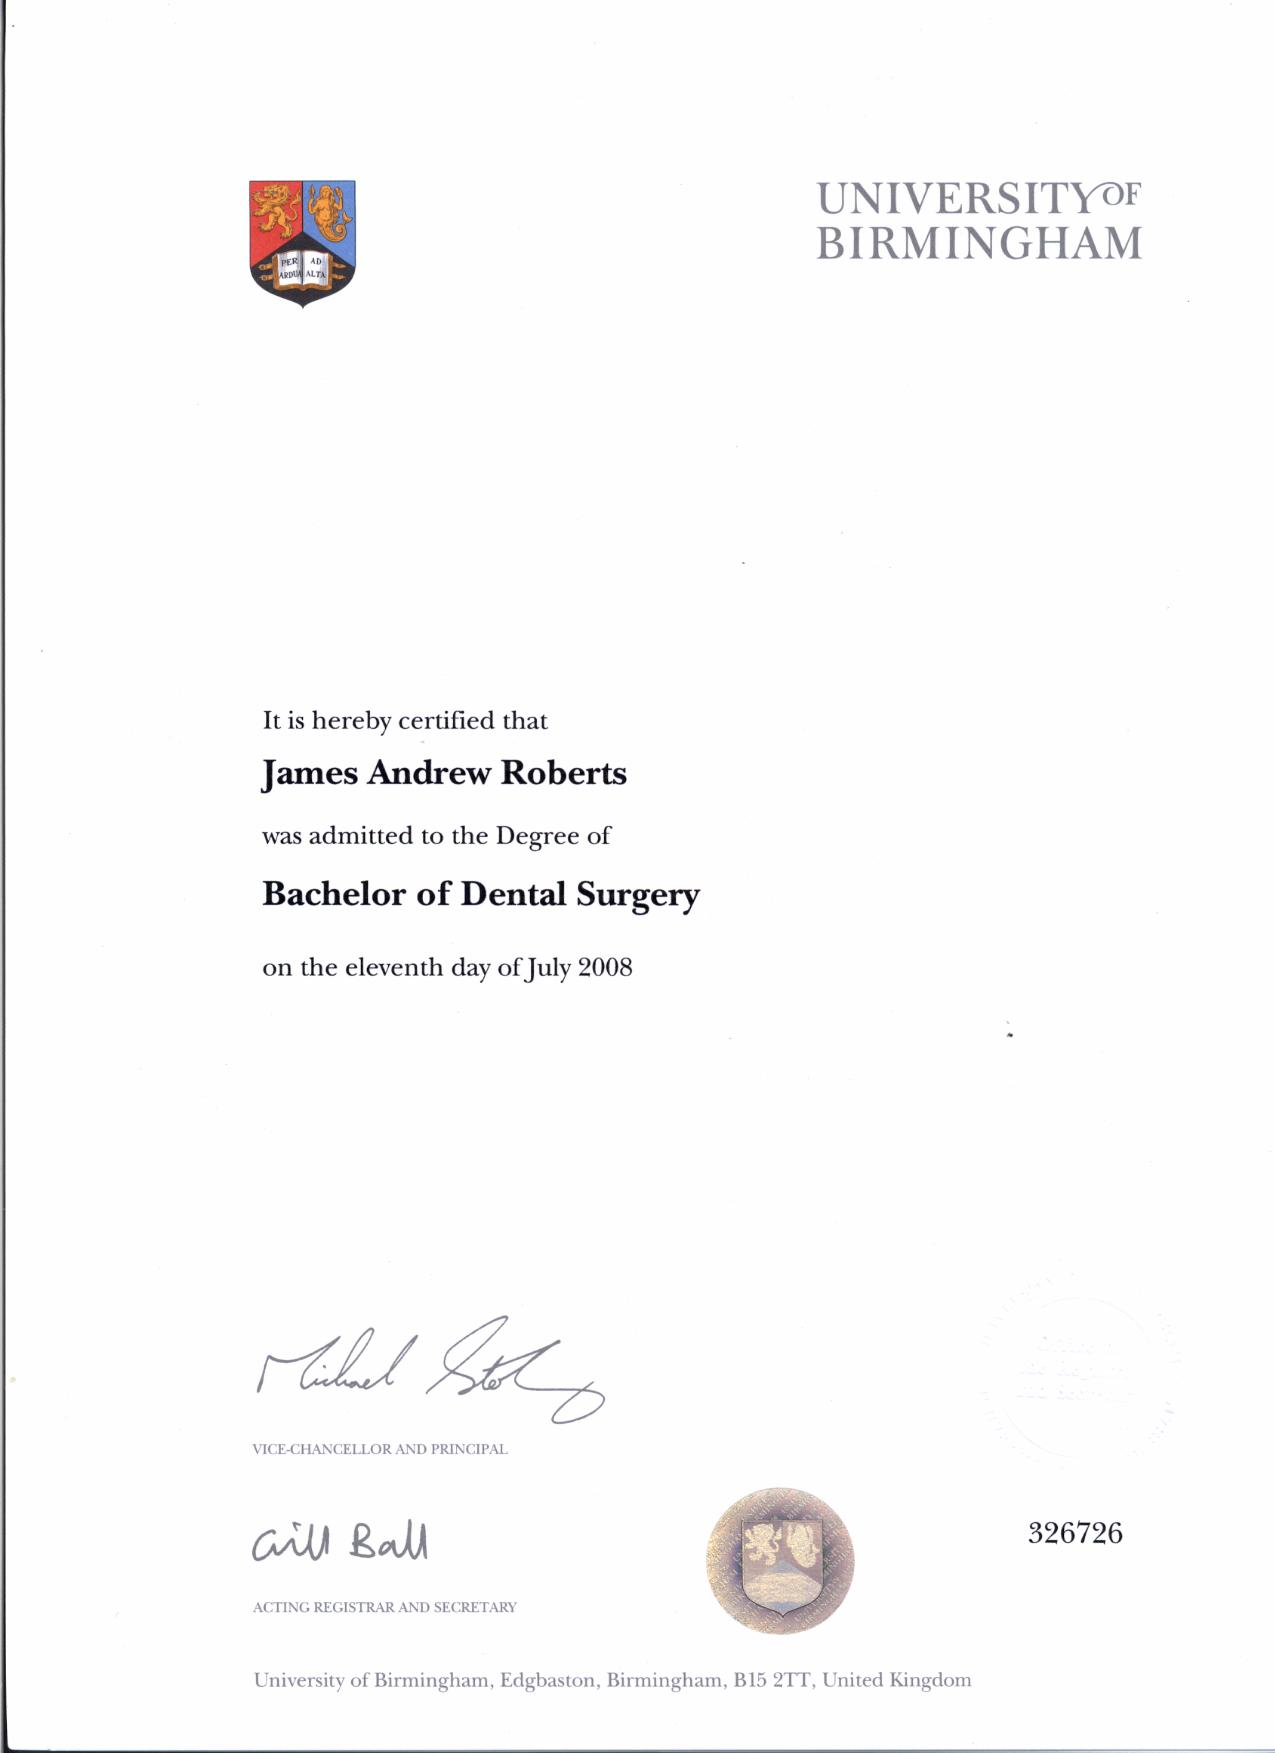 July 2008 – Completion of Bachelor of Dental Surgery